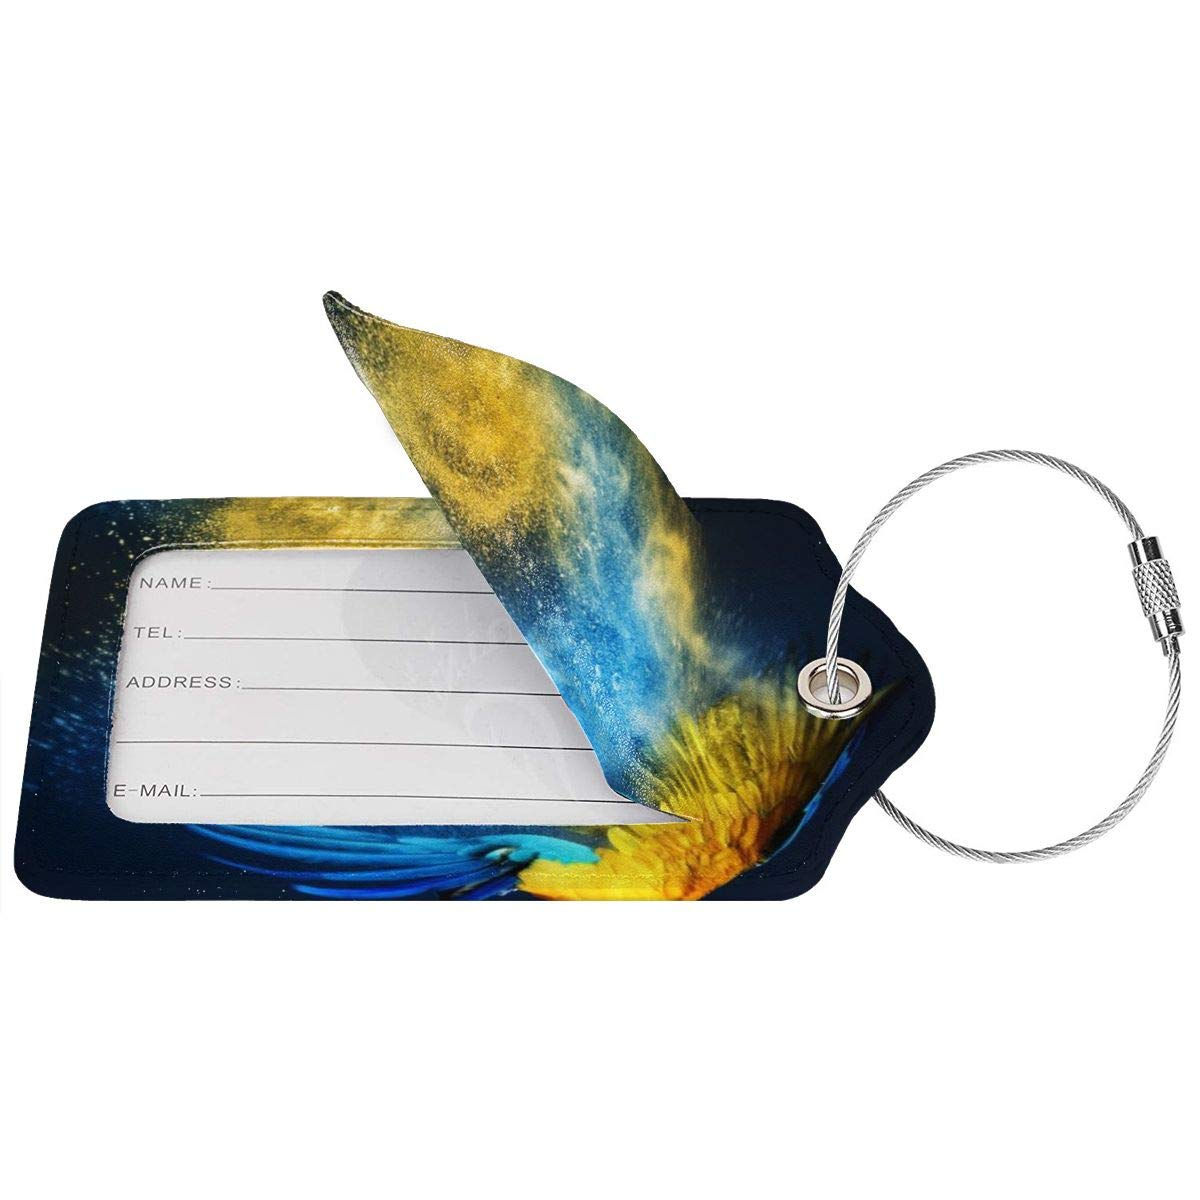 Bird Blue And Yellow Macaw Parrot Luggage Tag Label Travel Bag Label With Privacy Cover Luggage Tag Leather Personalized Suitcase Tag Travel Accessories